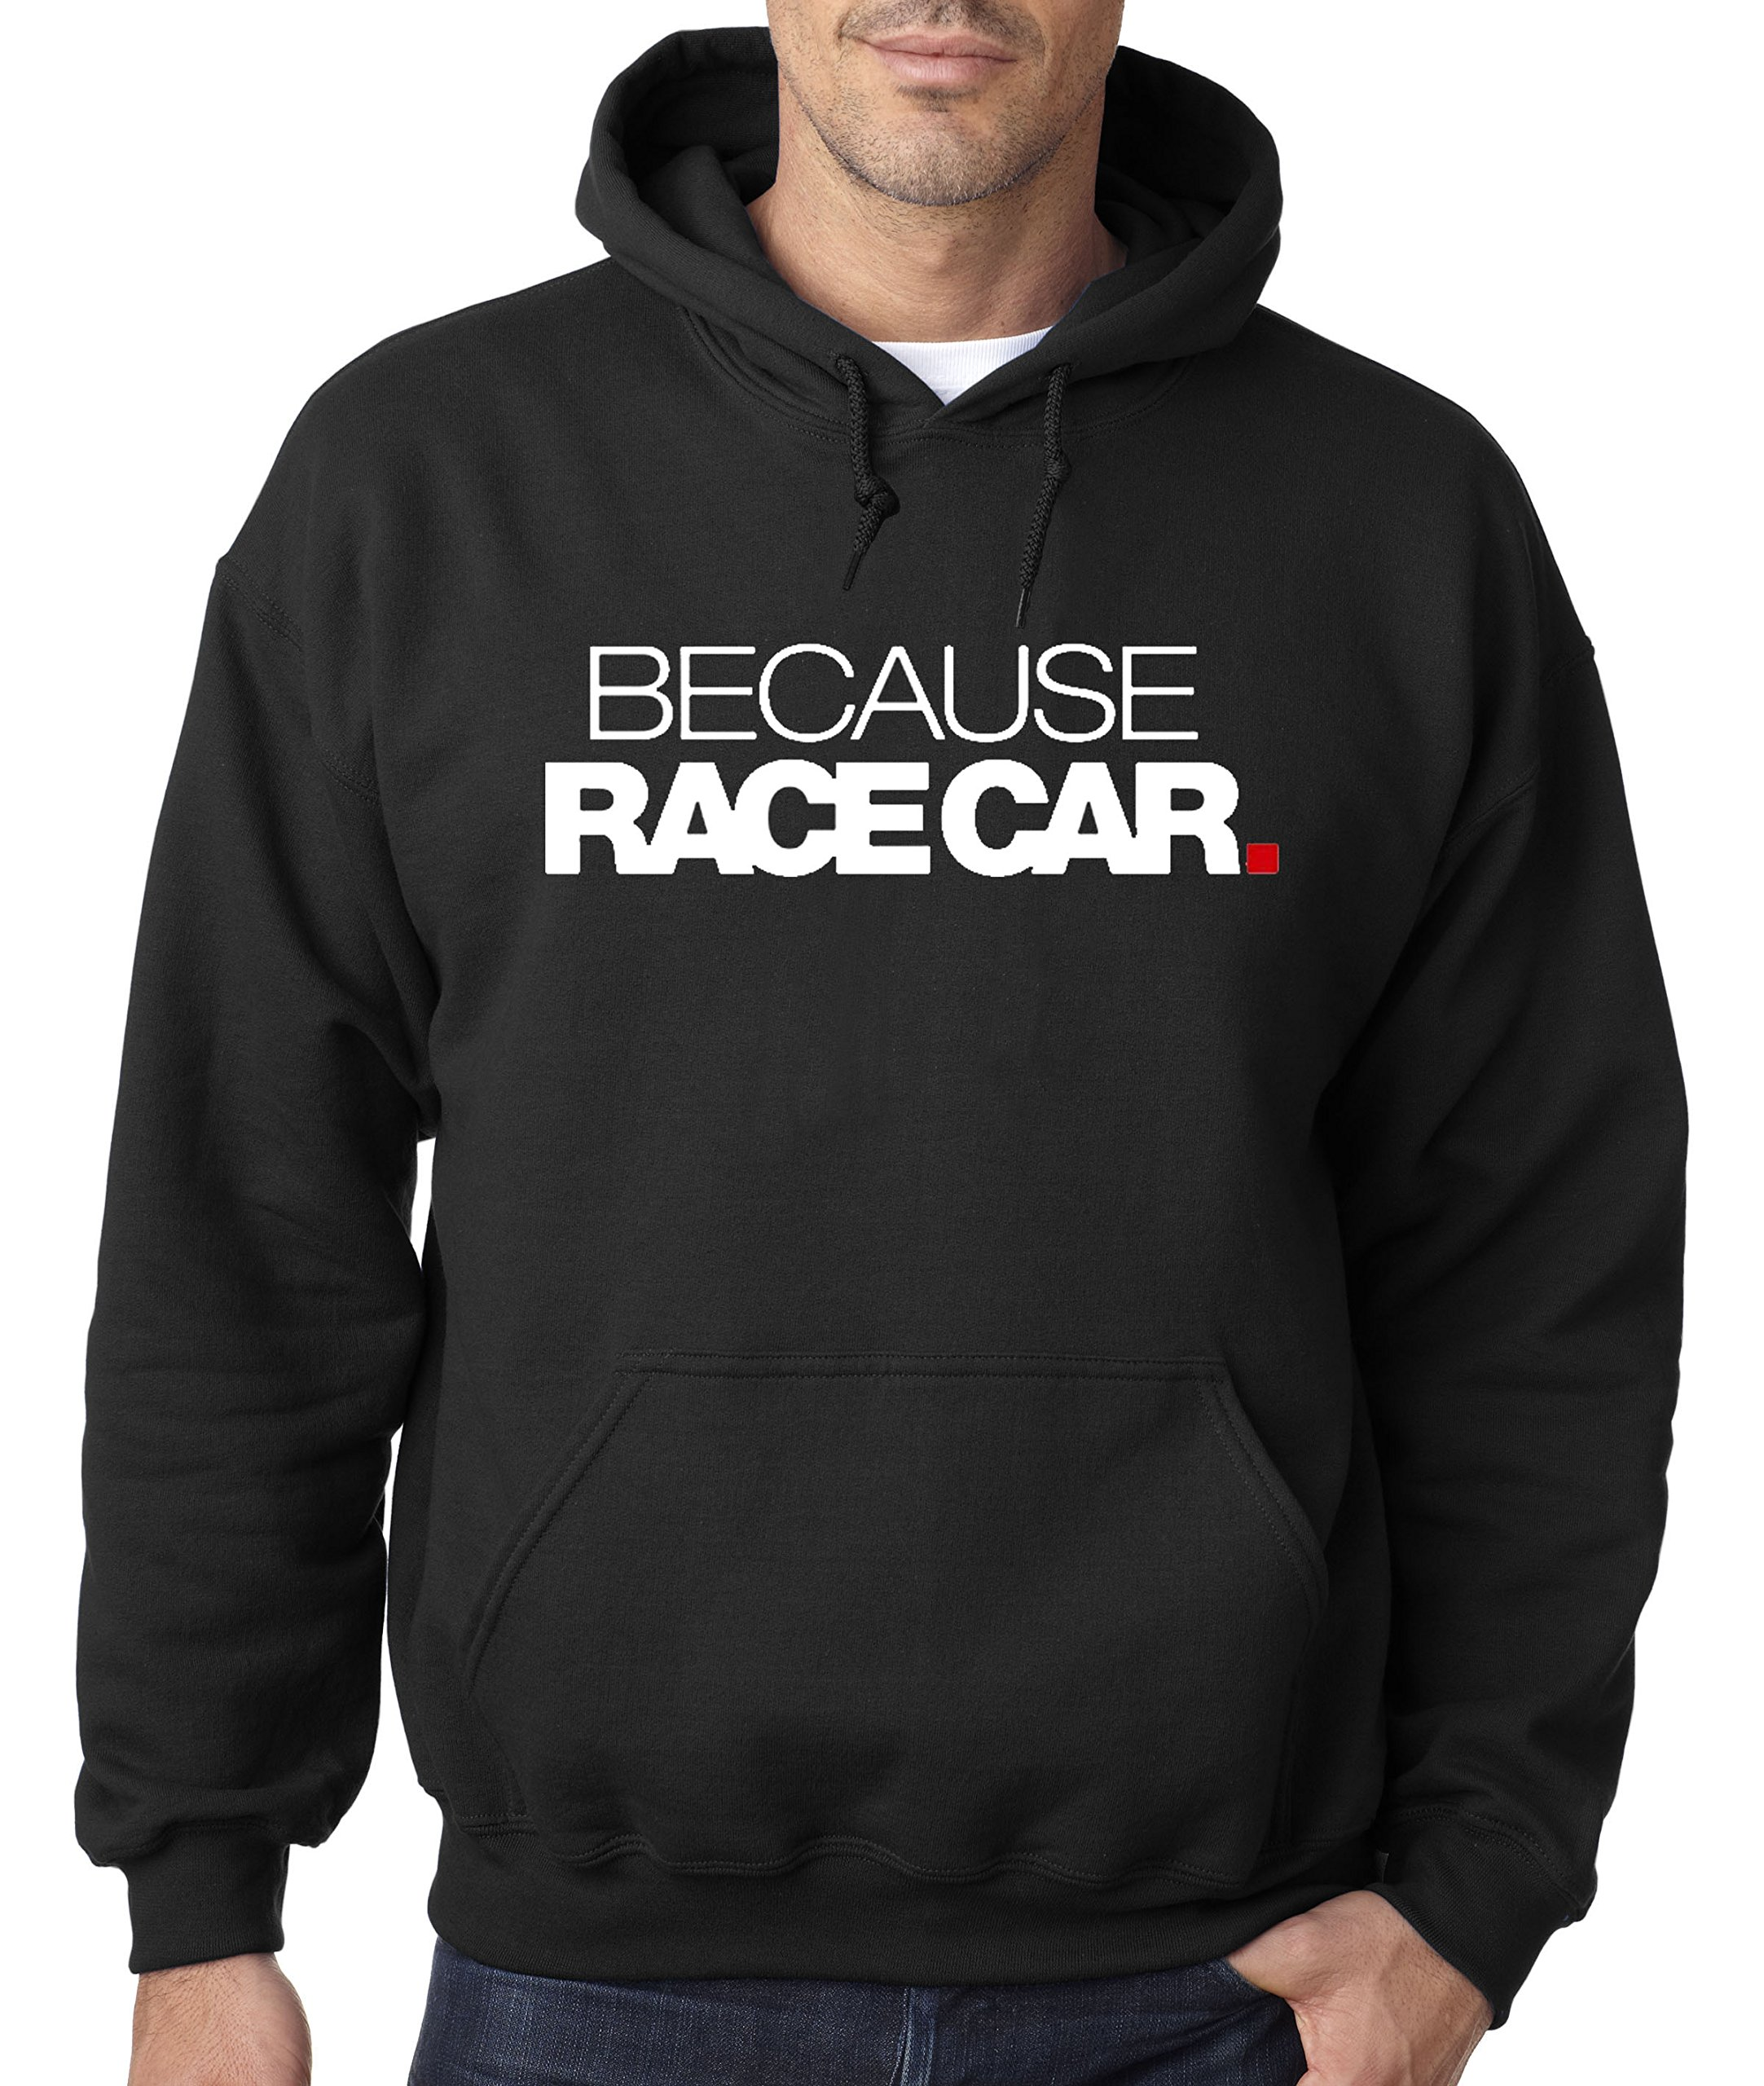 869 Adult Because Race Car Enthusiast Funny Humor Unisex Pullover Shirts